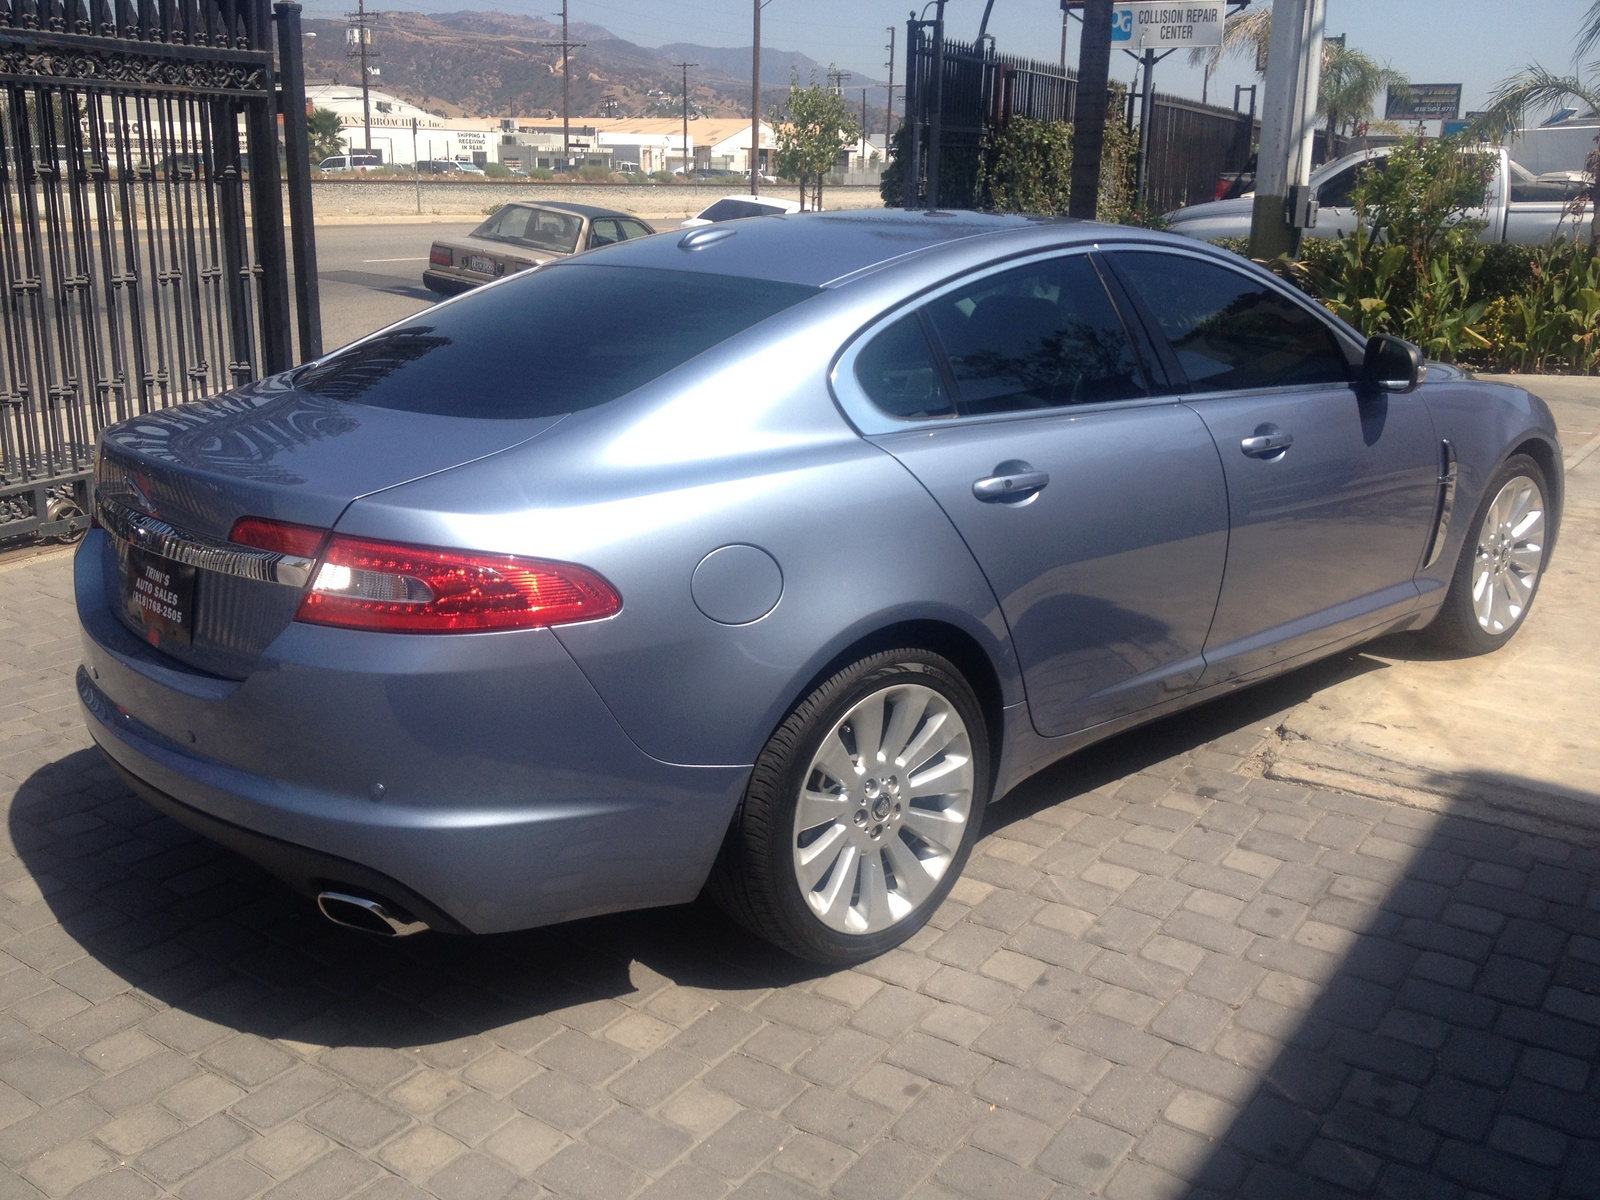 jaguar xf 2009 - photo #35